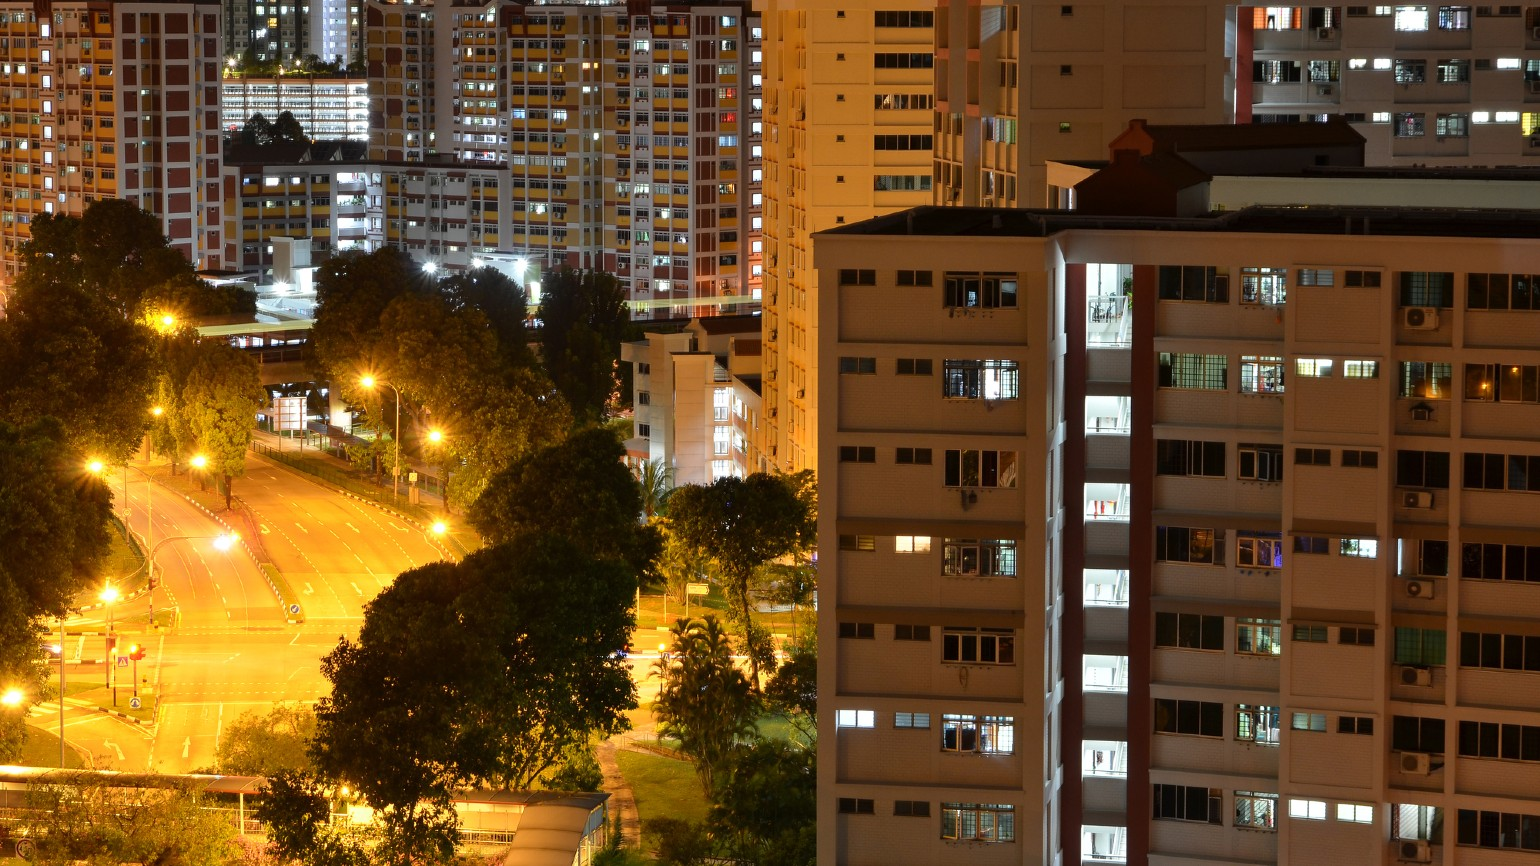 HDB flats at night by a road